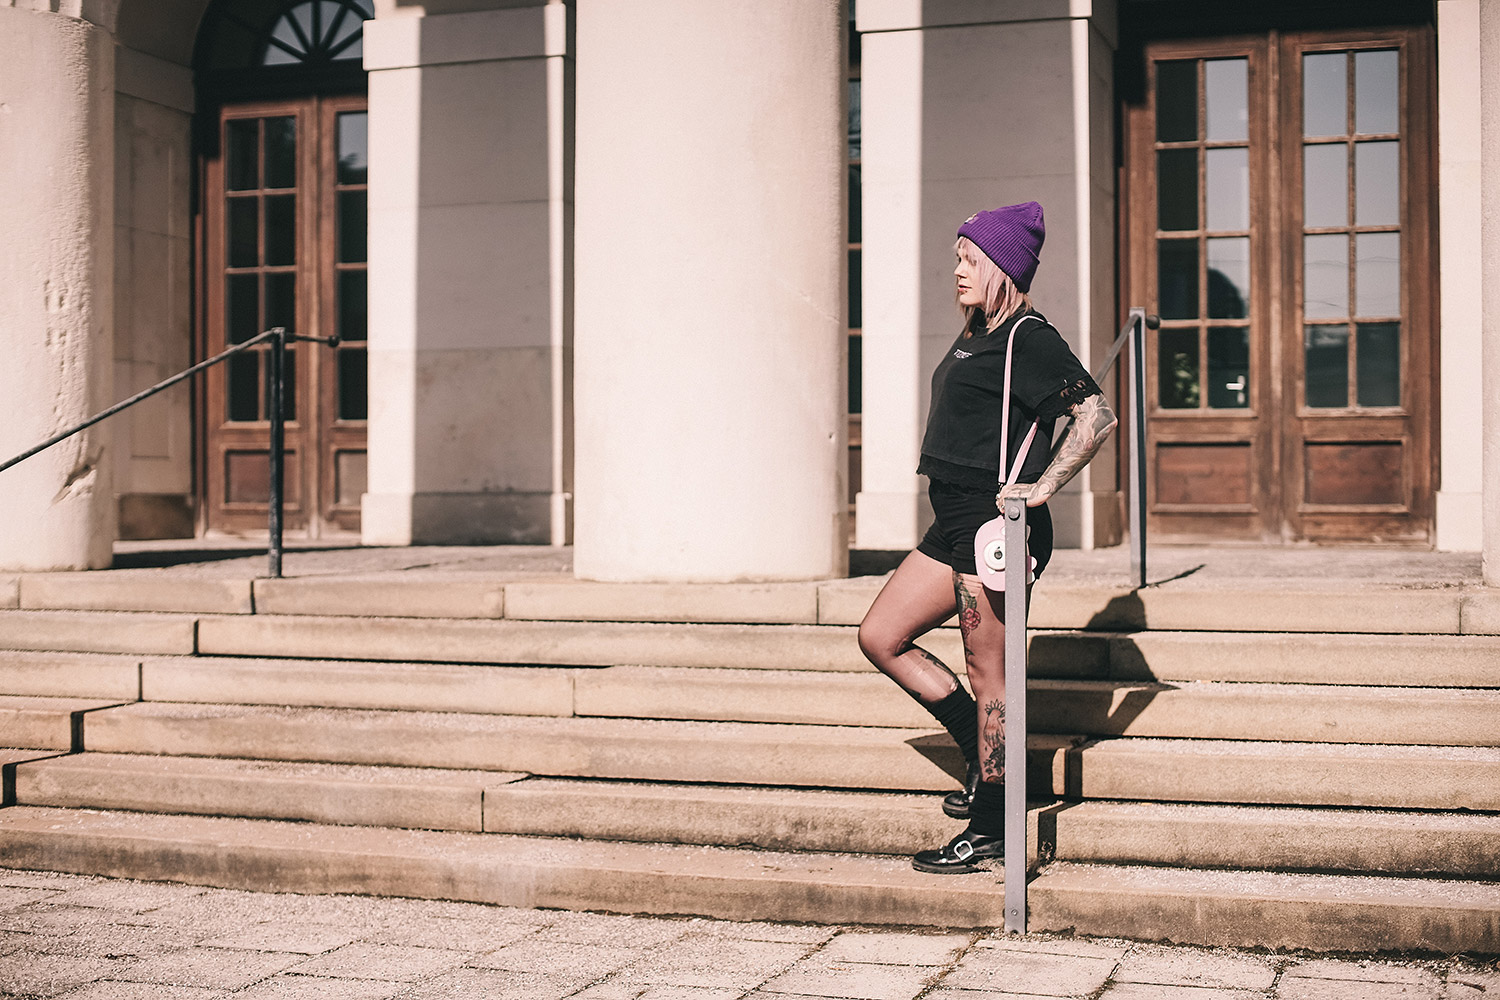 vvitch, witch, Disturbia, beanie, larakingdraws, Lara king, Lila, rosa haare, all black, shorts, boots, spitze, Fujifilm, instax, hello kitty, instant camera, sofortbildkamera, polaroid, crop top, alternative, alternative fashion, alternative girl, alternative mode, altgirl, berlin, berlin fashion, berlin fashion blogger, berlin mode, berlin streetstyle, blogger, fashion blogger, girls with piercings, girls with tattoos, grunge, grunge fashion, grunge mode, mode, Punk, punk fashion, punk mode, punkgirl, punkmädchen, scenehair, snakebites, split hair, splithair, tattoomädchen, tattoomodel